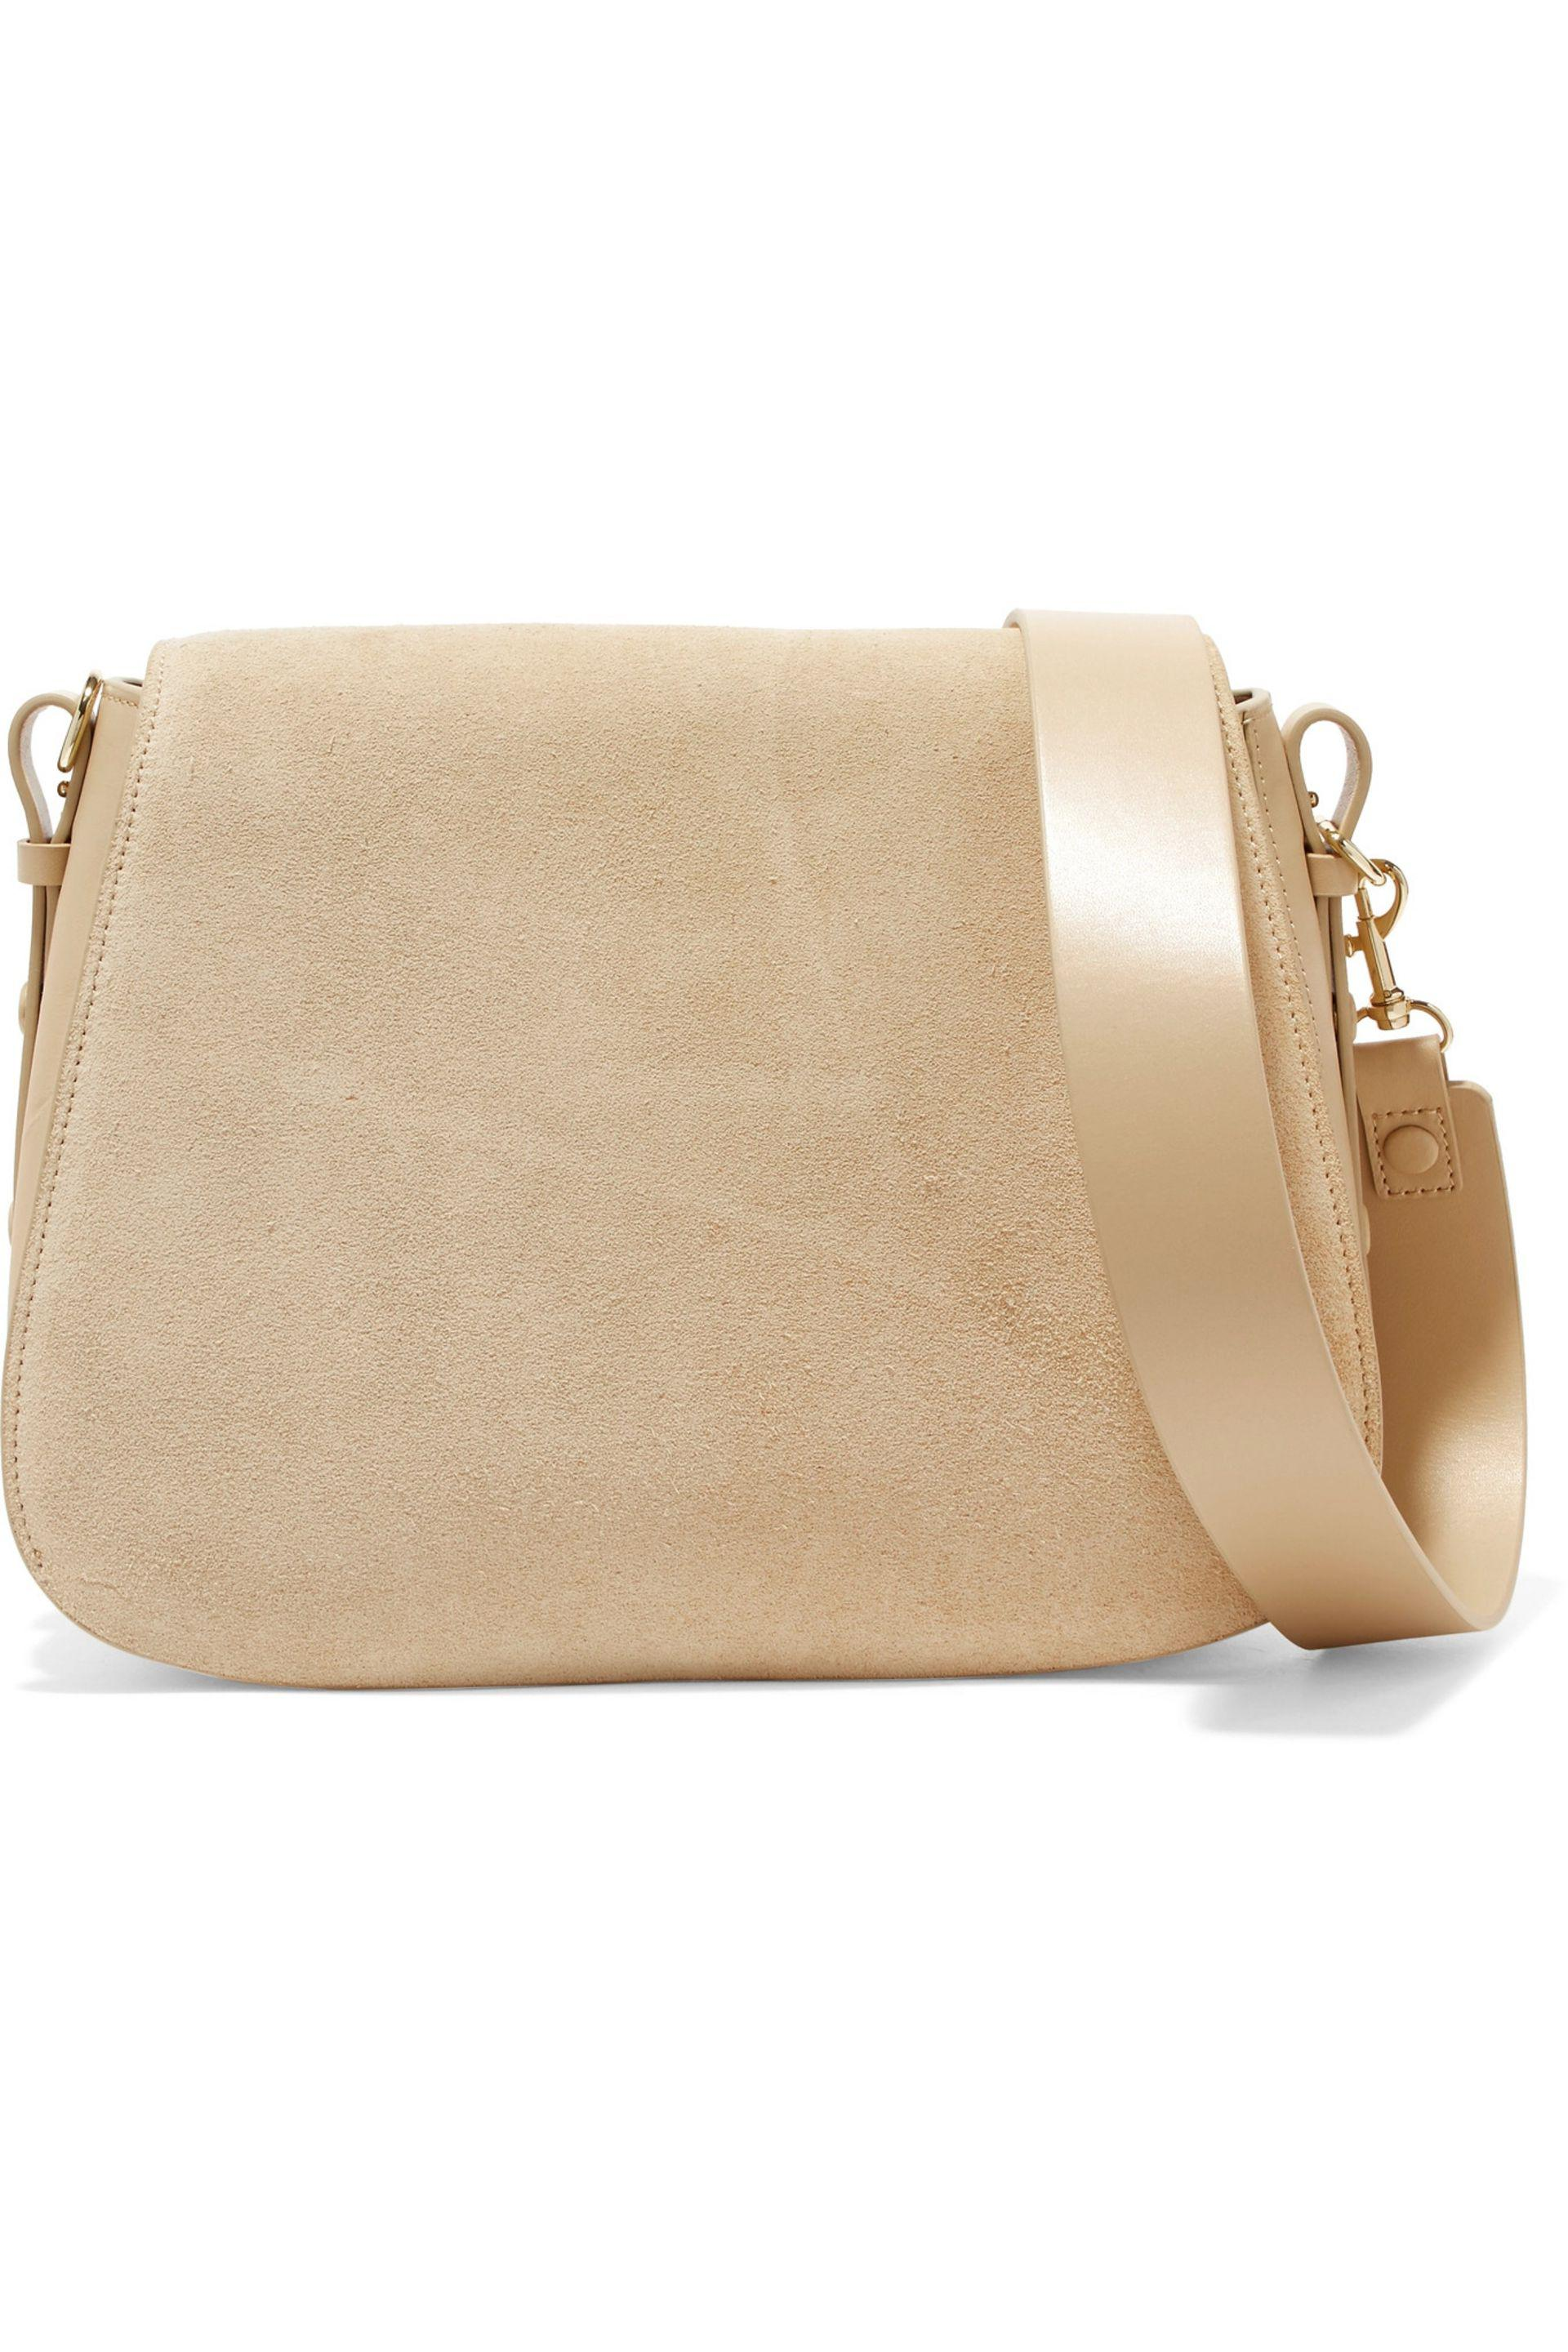 3b85f117f0 Halston Heritage Suede And Leather Shoulder Bag in White - Lyst